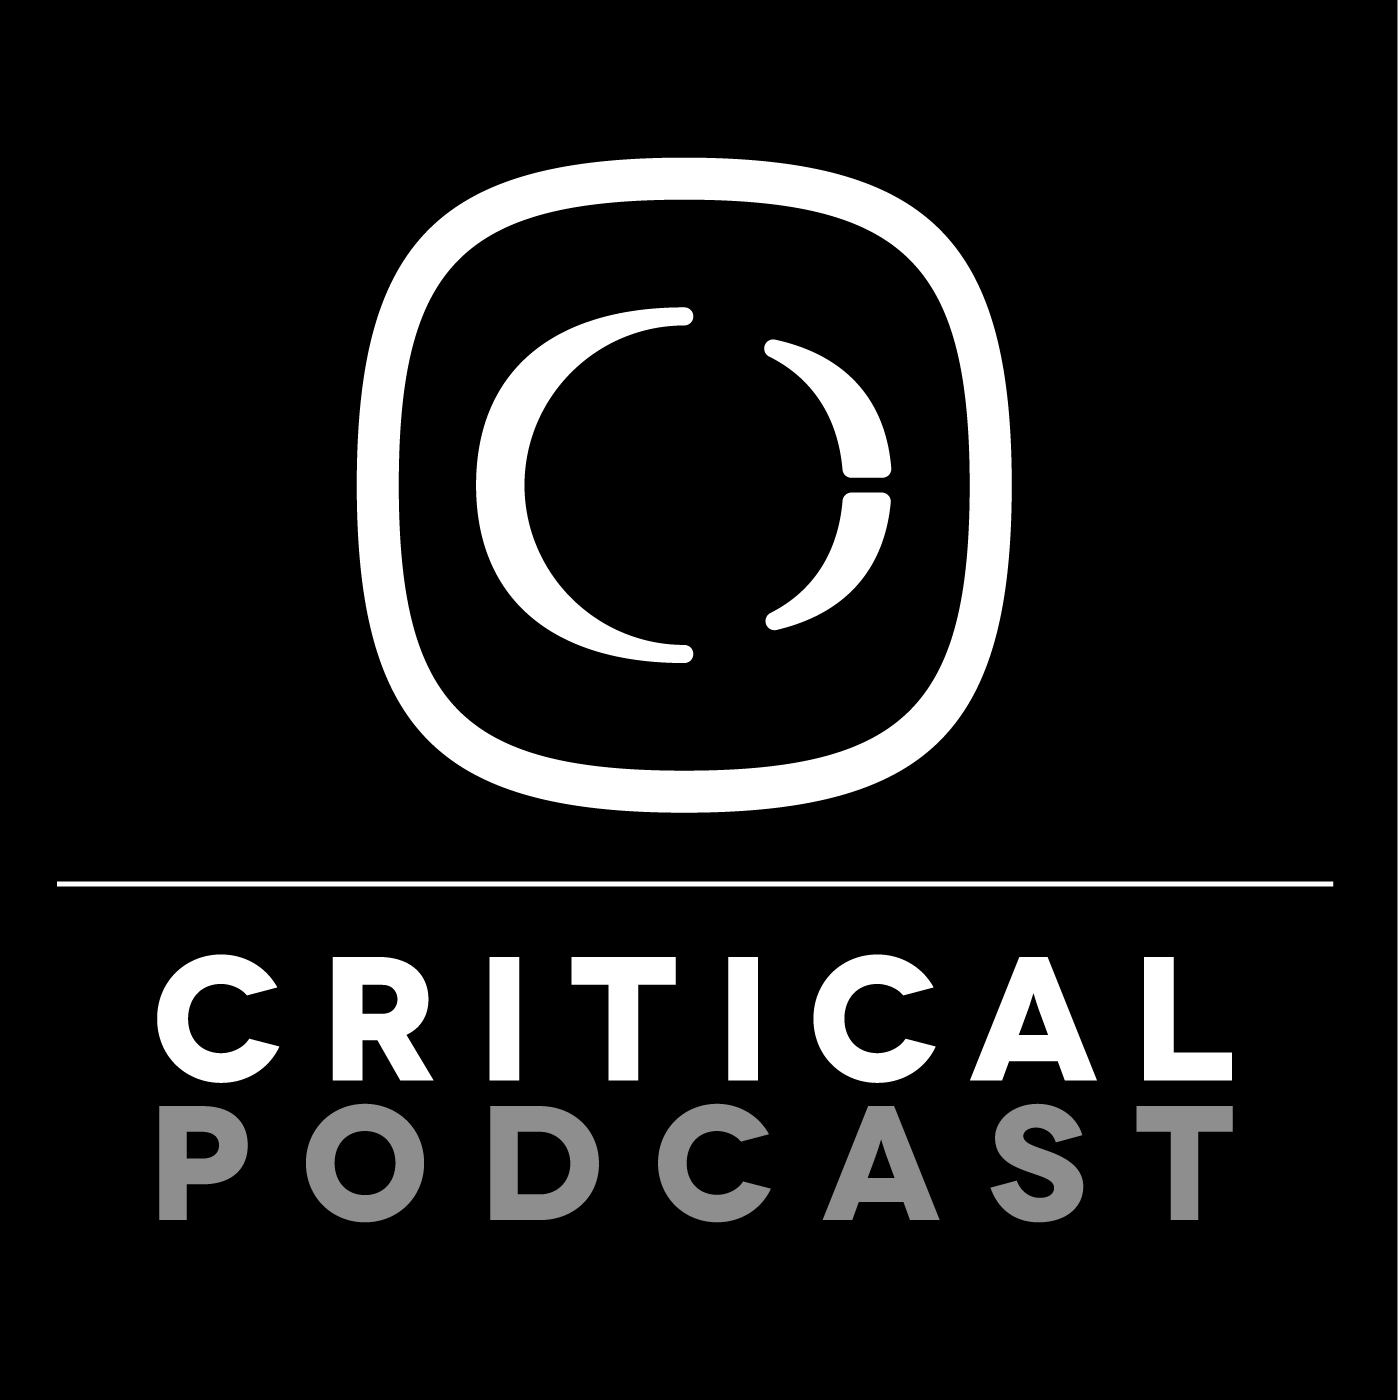 Critical Podcast